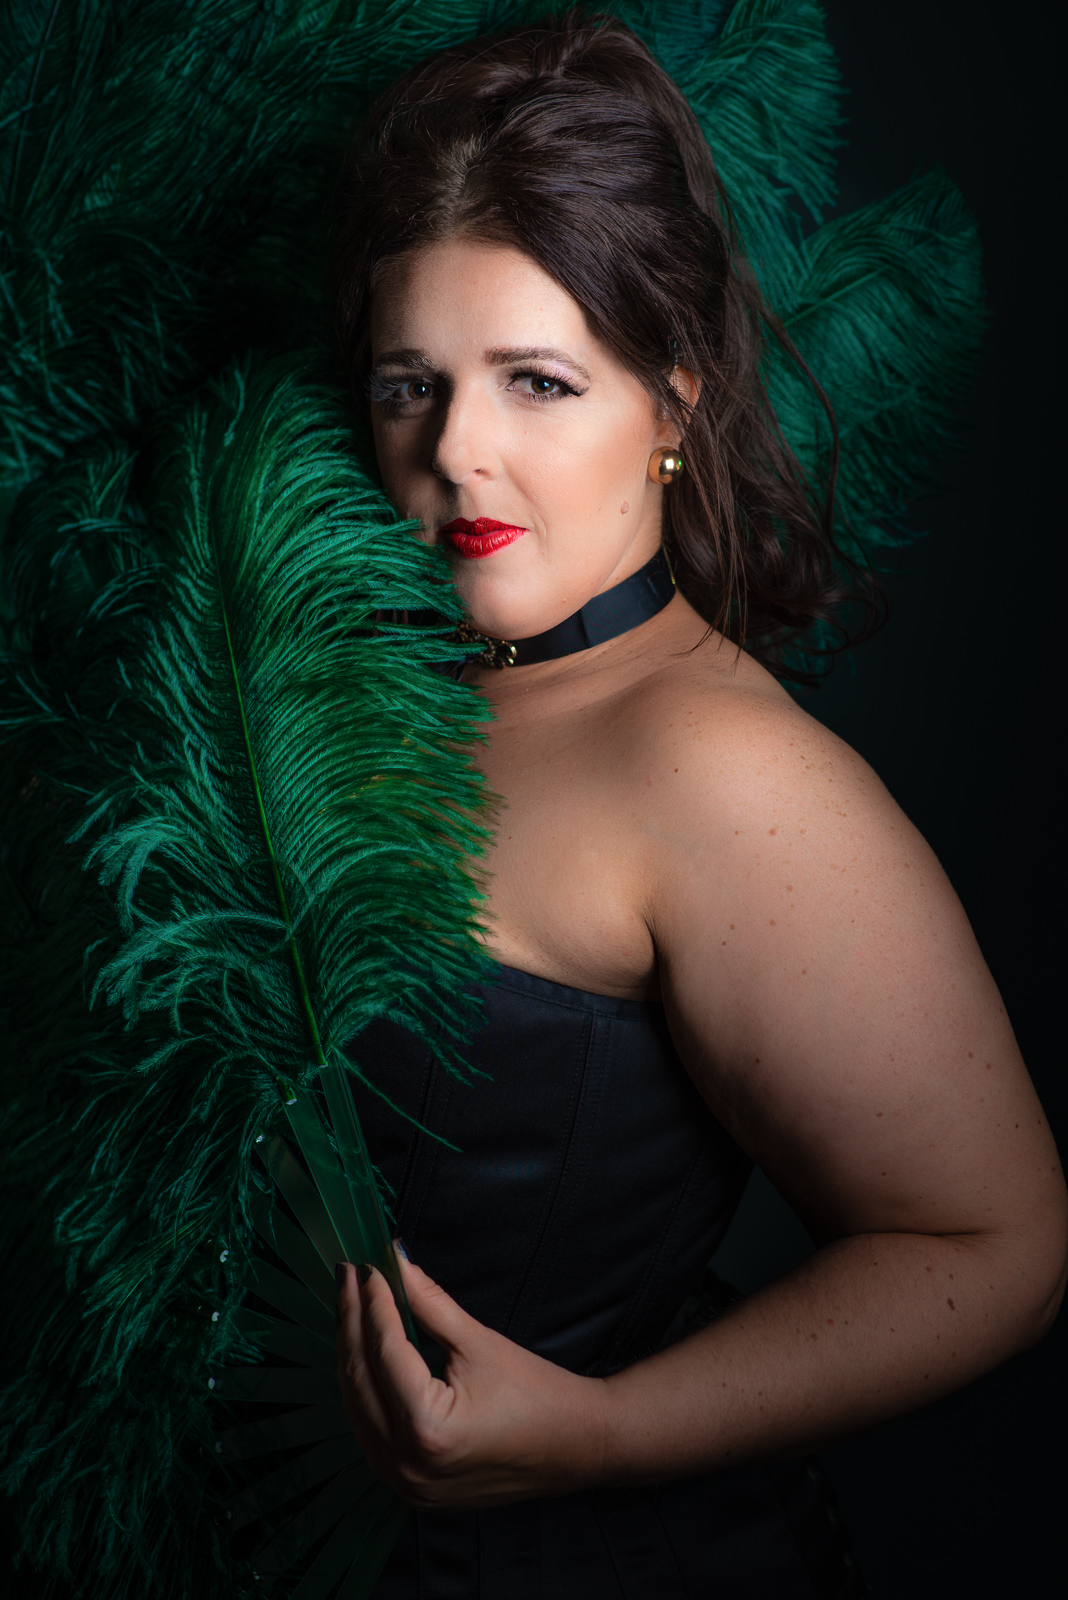 Up close portrait of Cora Confetti burlesque performer wearing black corset and holding green feather fans. Caboolture portrait photography